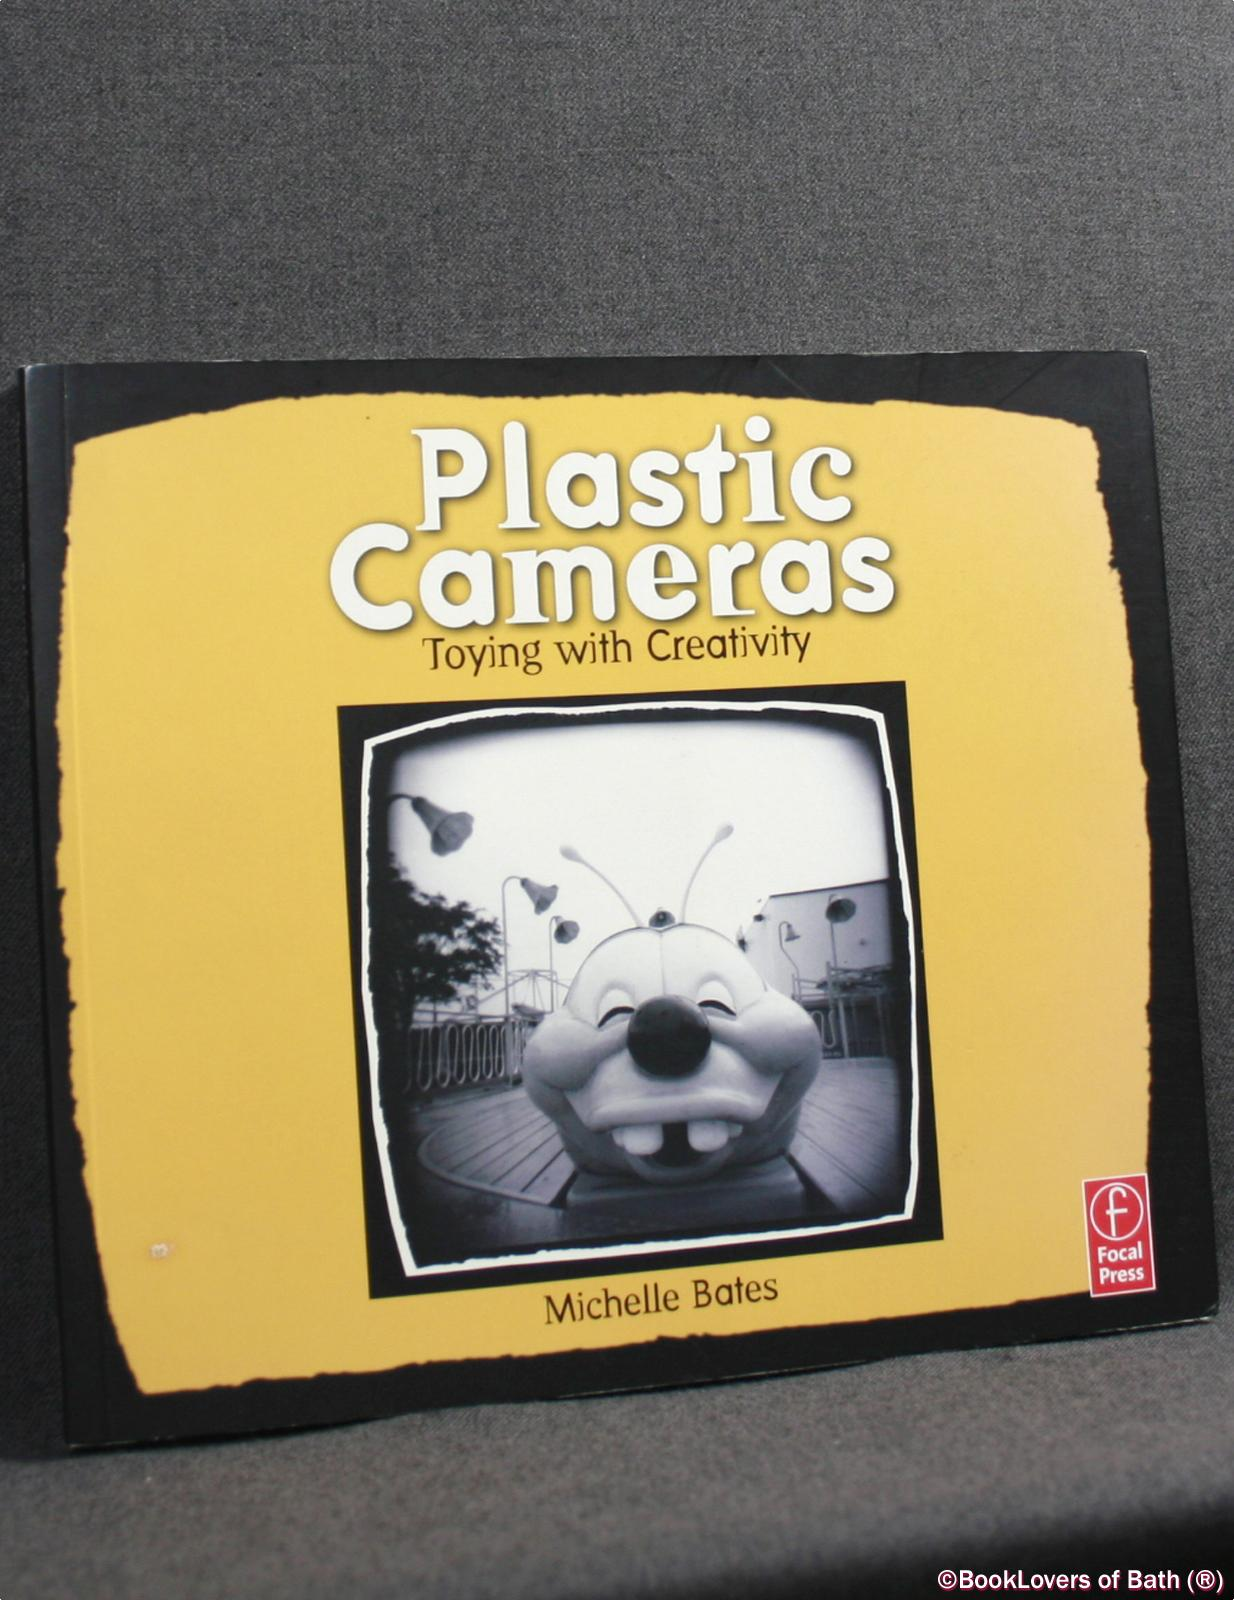 Plastic Cameras: Toying with Creativity - Michelle Bates